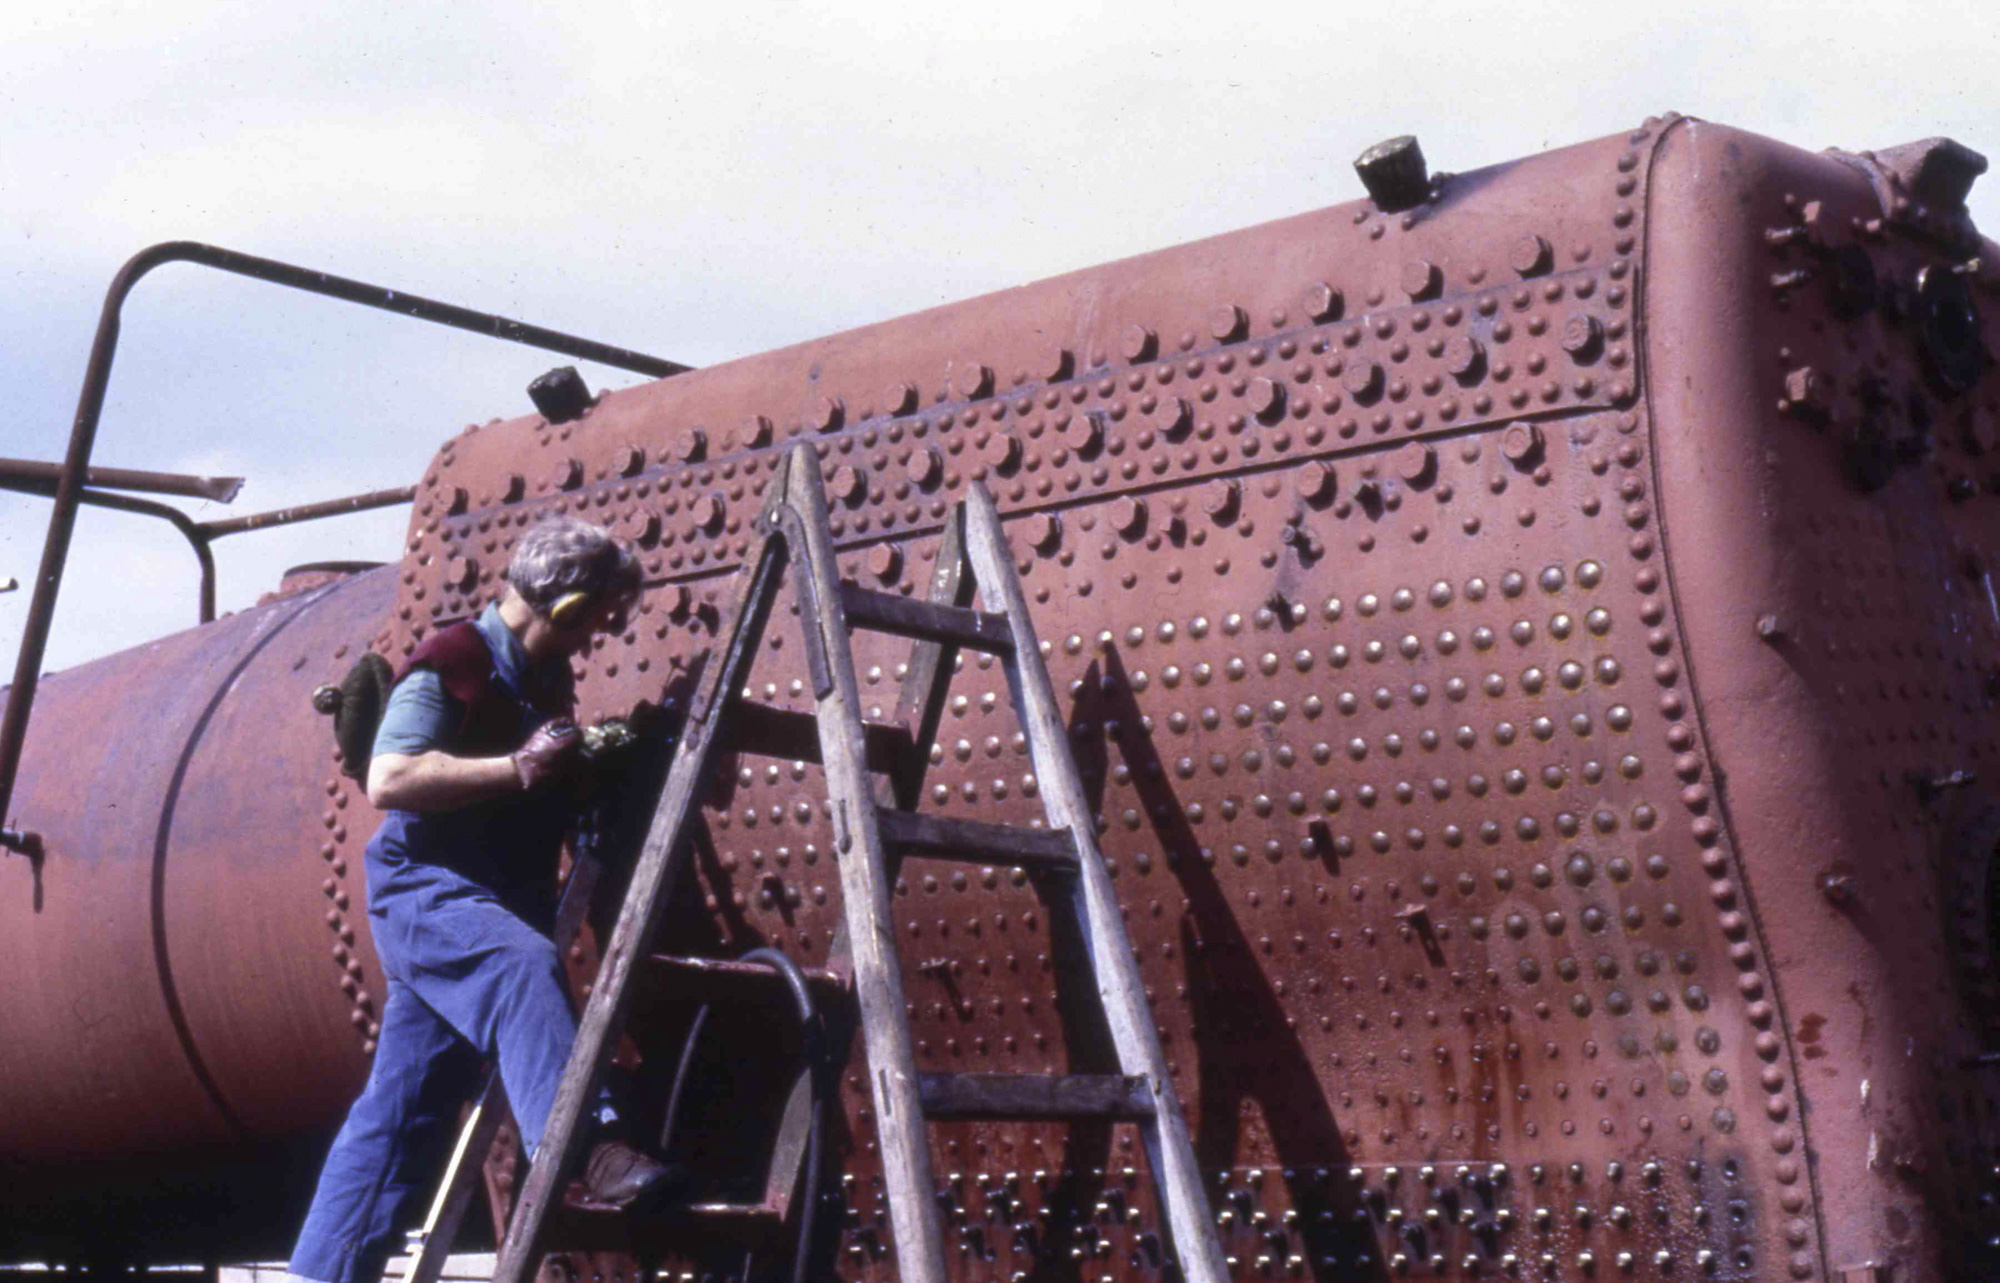 Working on the boiler, 21 April 1985. © Unknown, please contact us if you know the photographer.